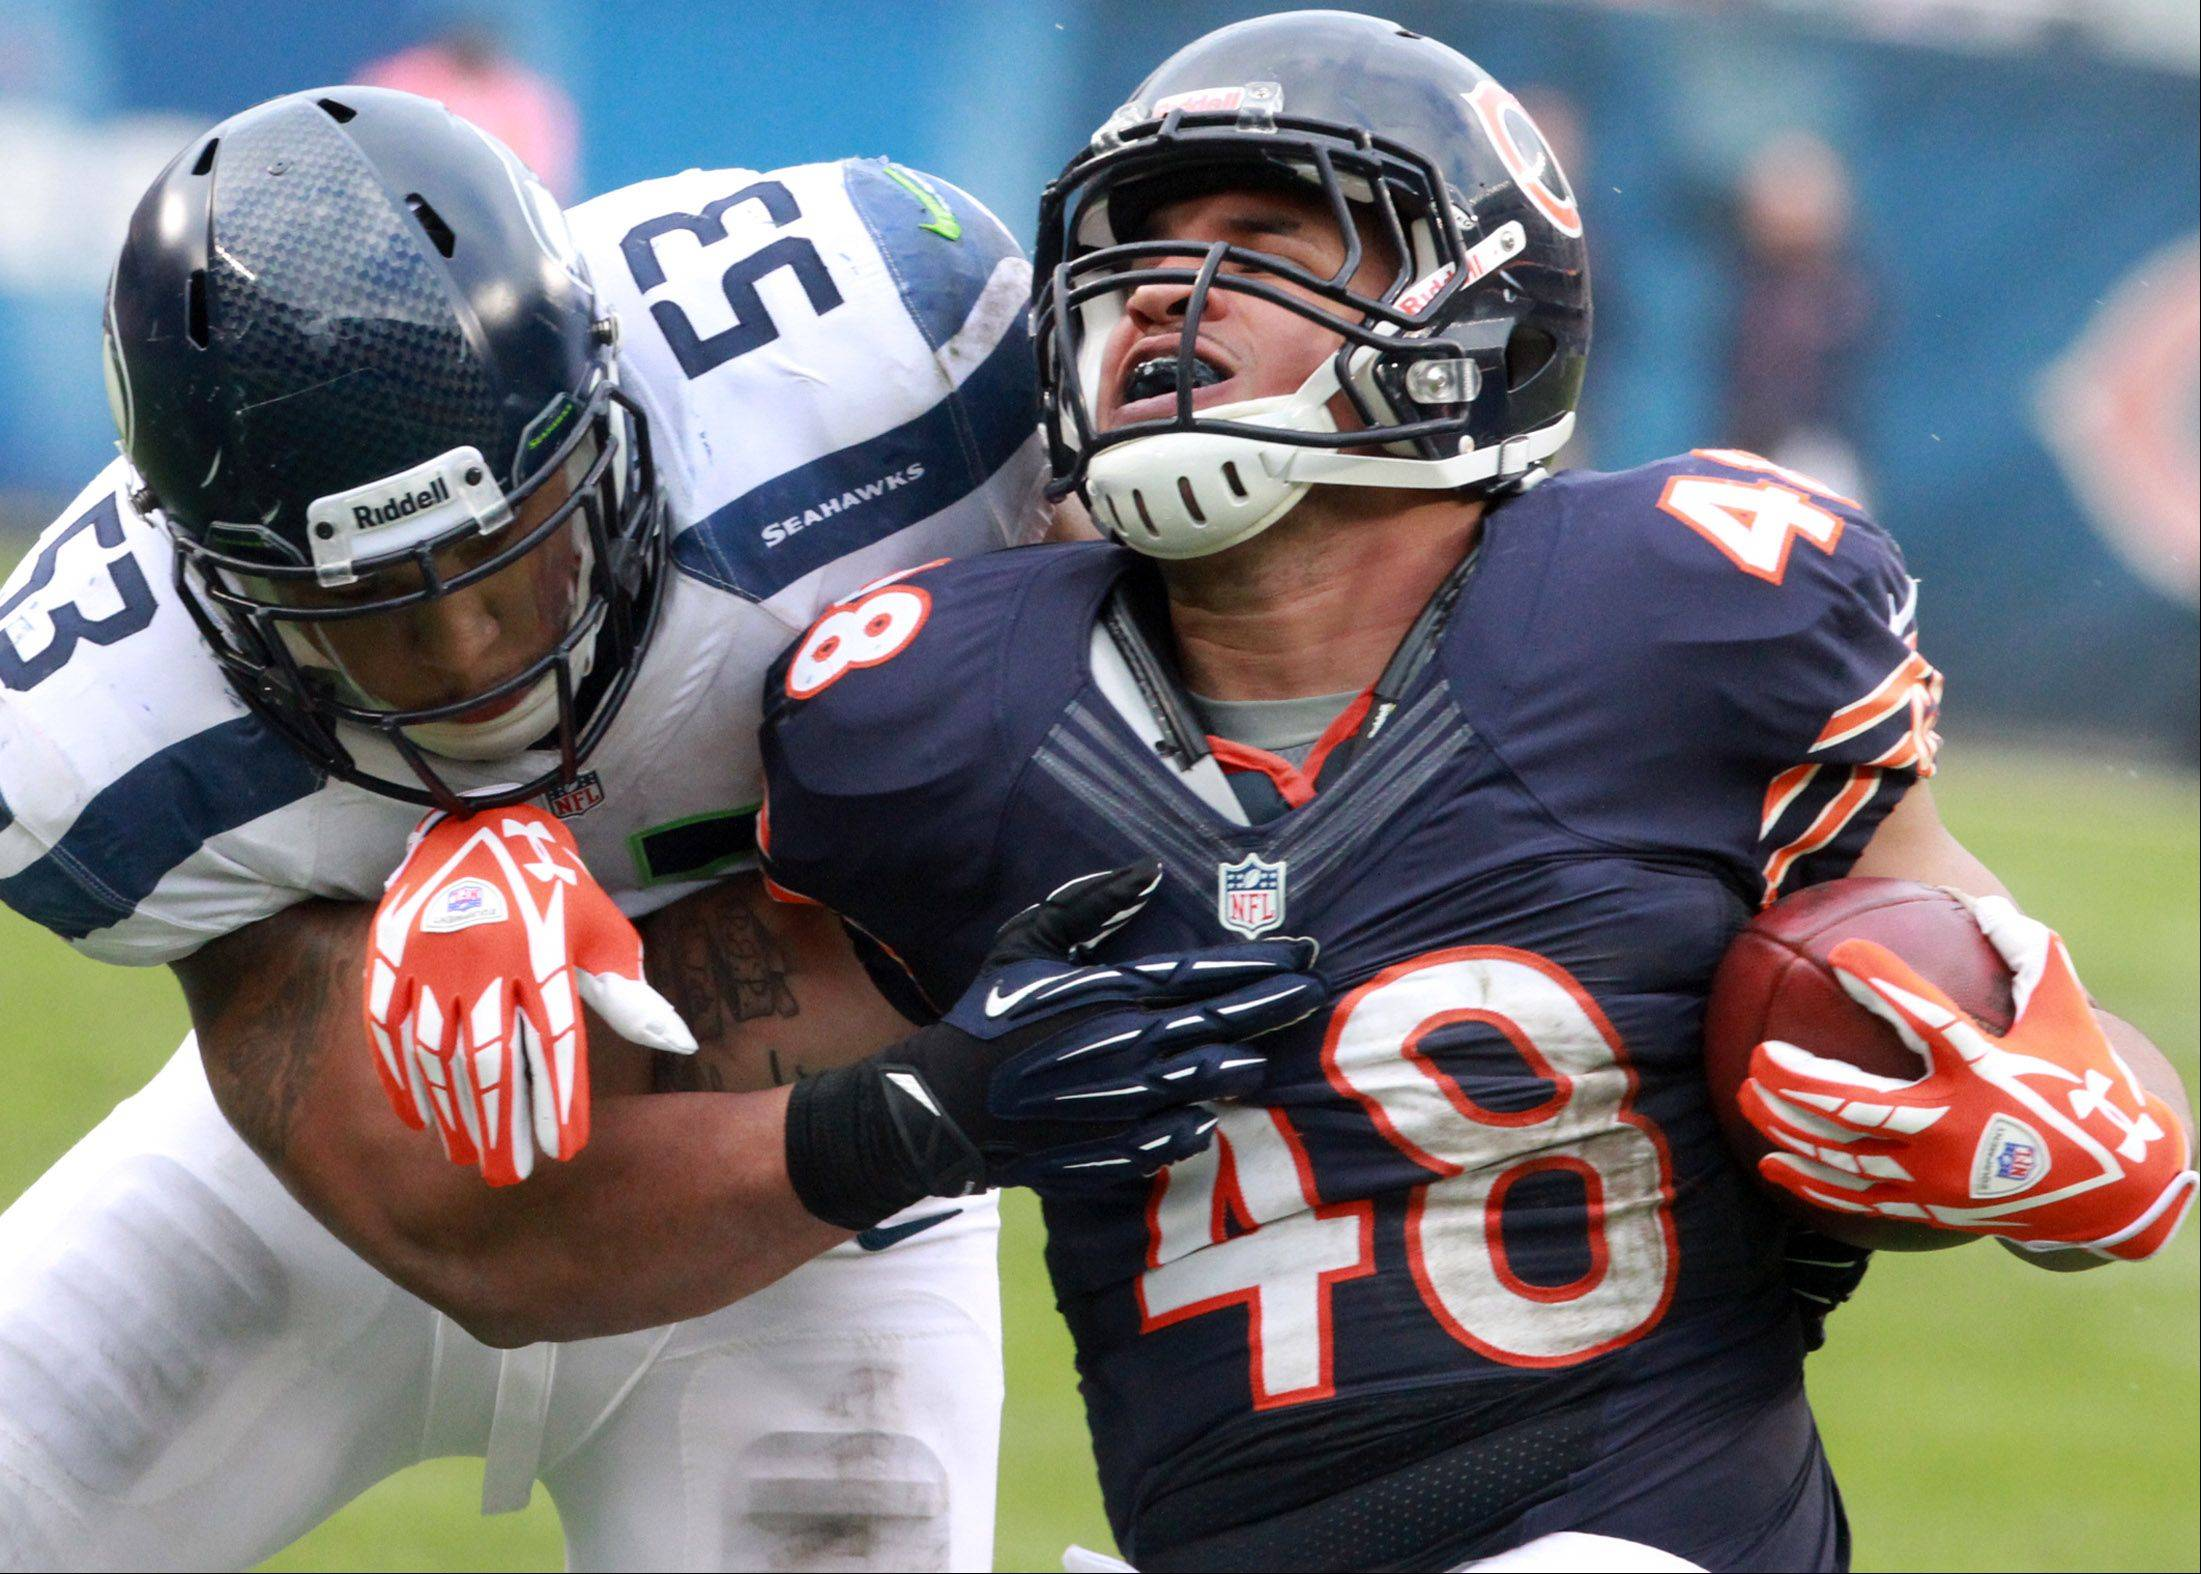 Chicago Bears fullback Evan Rodriguez is pulled down by Seattle Seahawks linebacker Malcolm Smith at Soldier Field on Sunday.